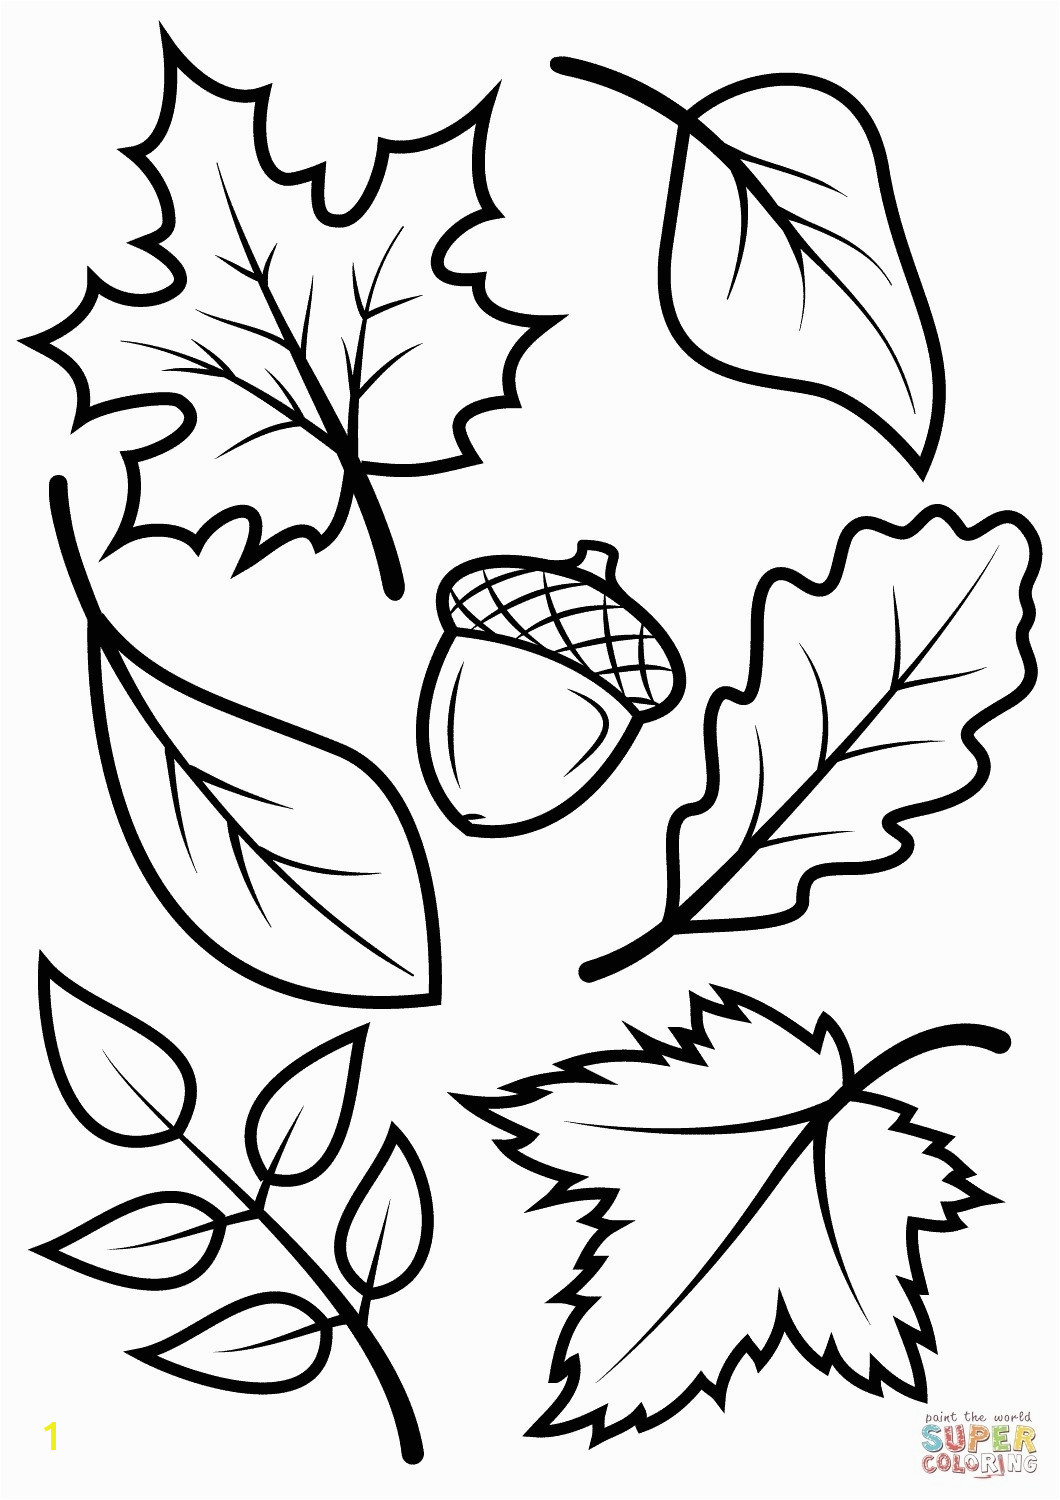 Fall Leaves Coloring Pages for Kindergarten Beautiful Fall Leaves Coloring Pages for Kindergarten